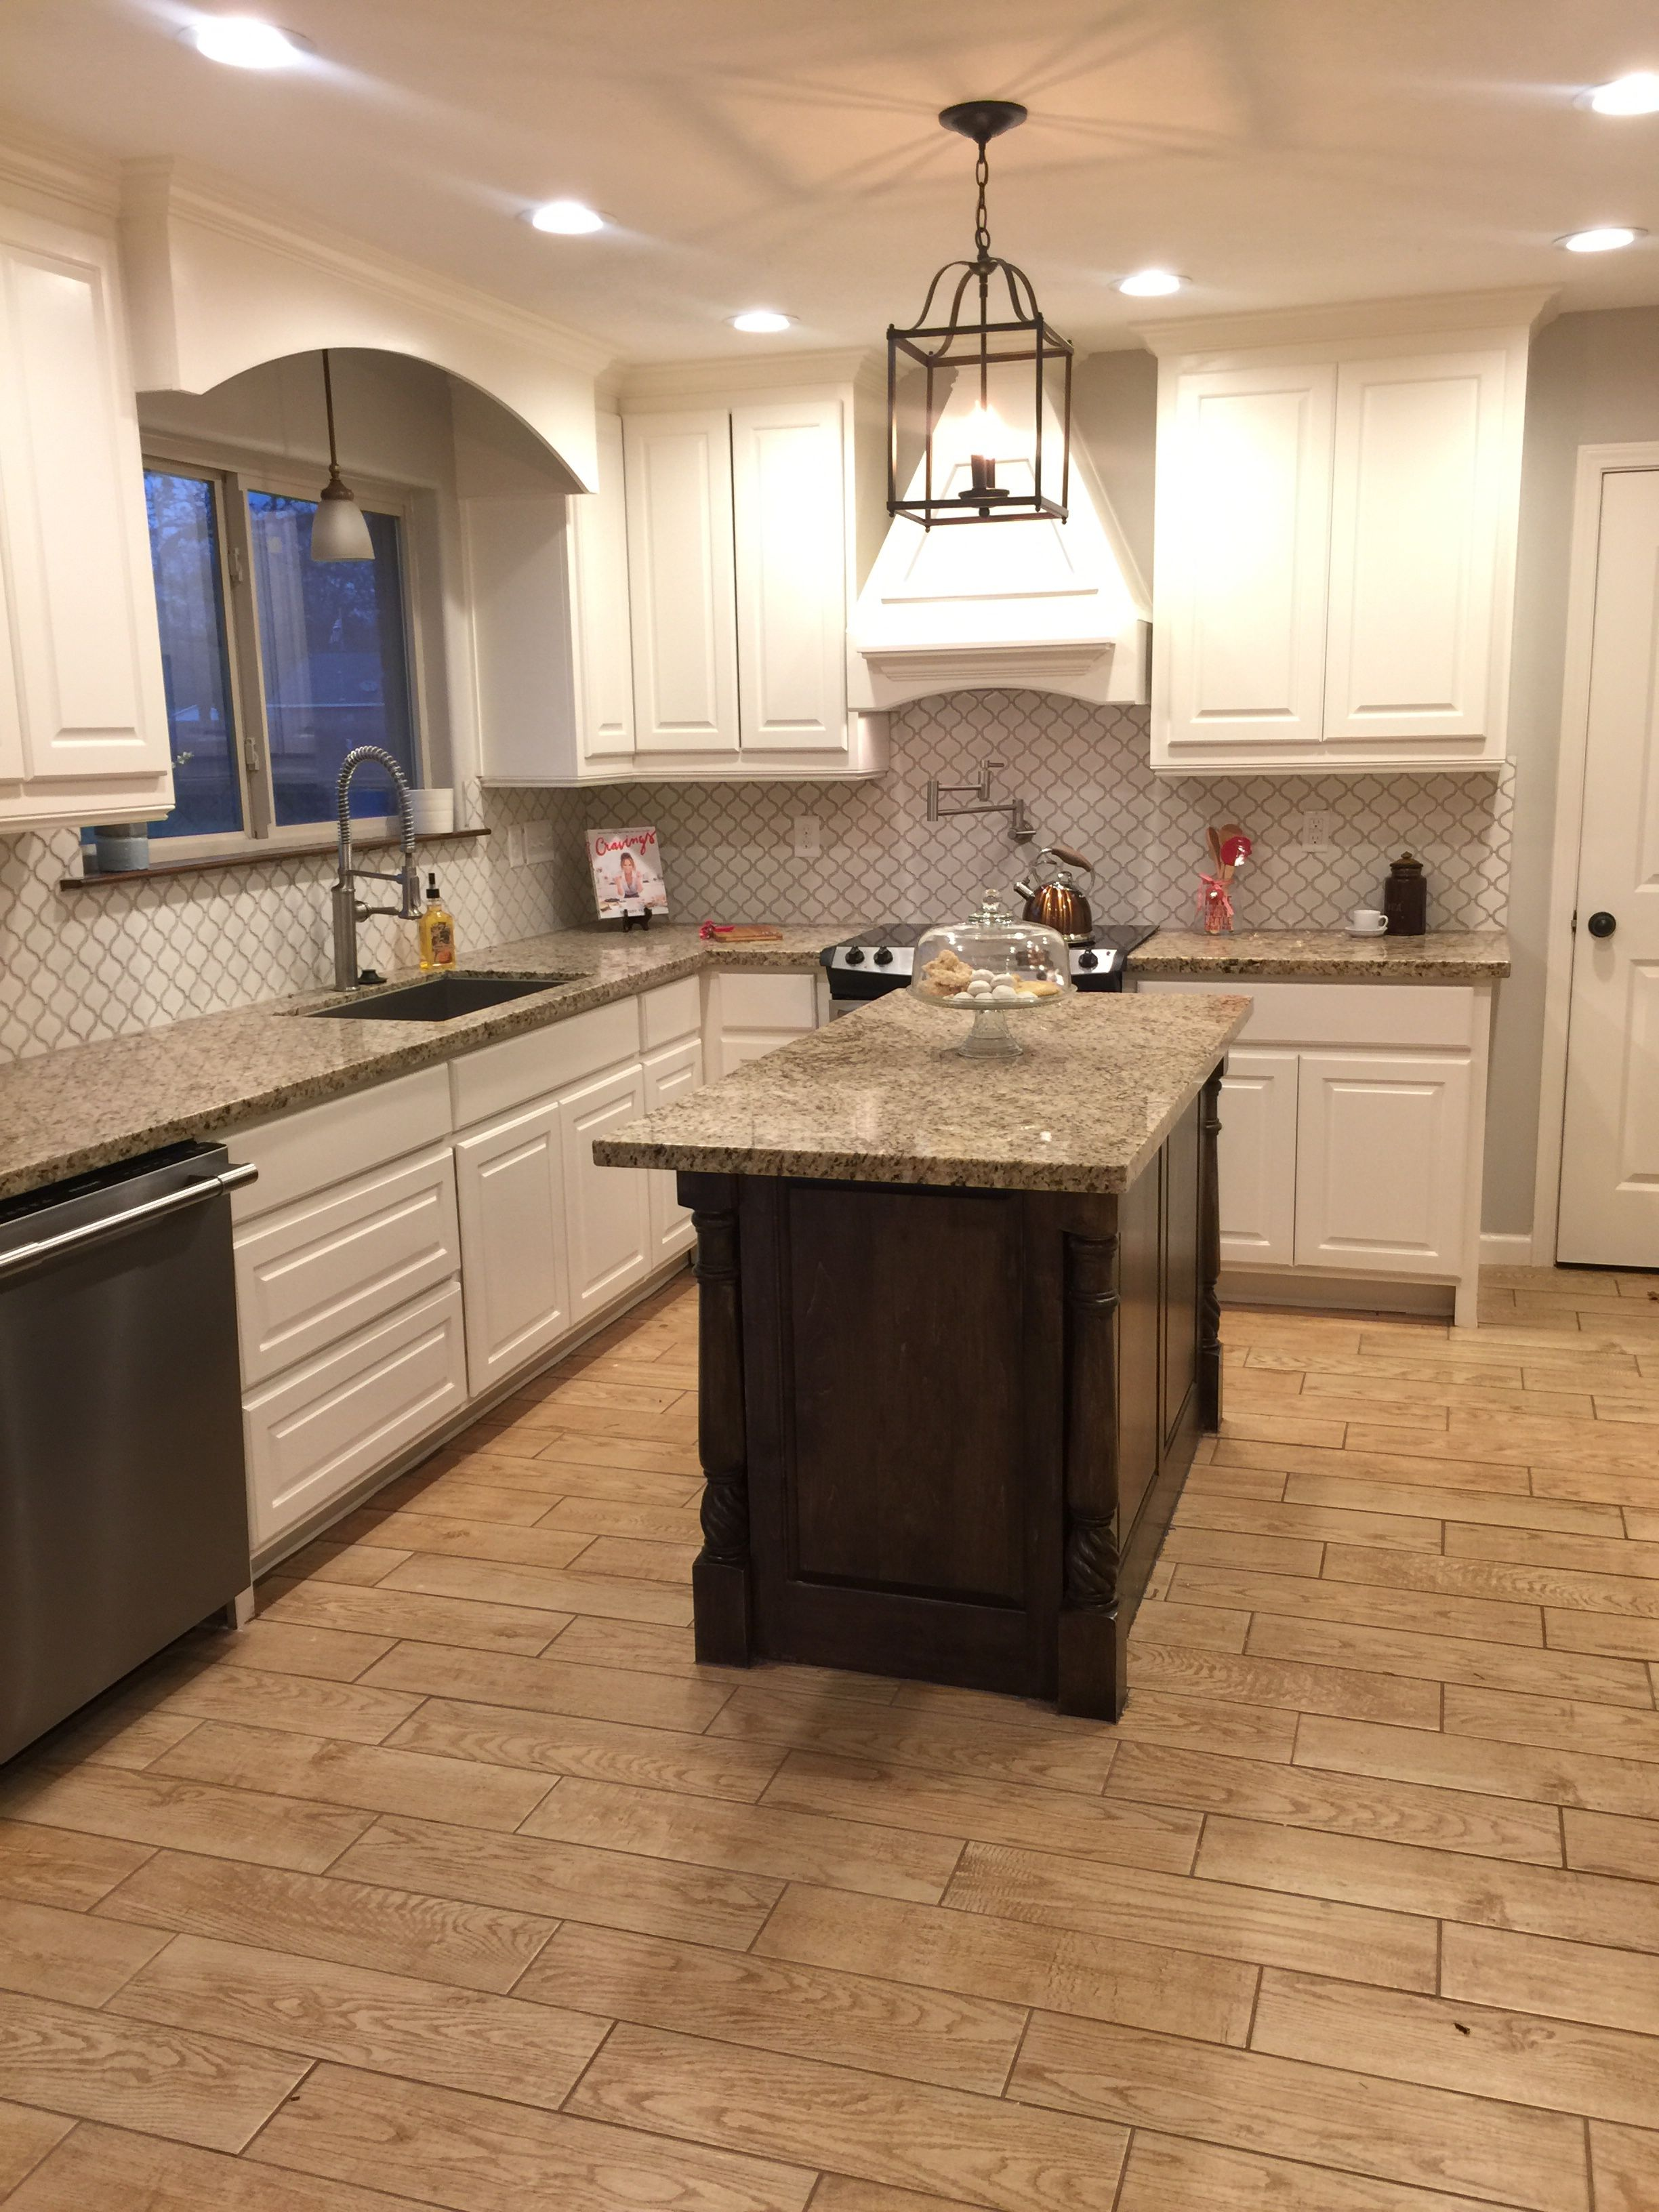 1970s ranch kitchen remodel makeover grand kitchen with stained island open concept and custom on kitchen remodel ranch id=72938